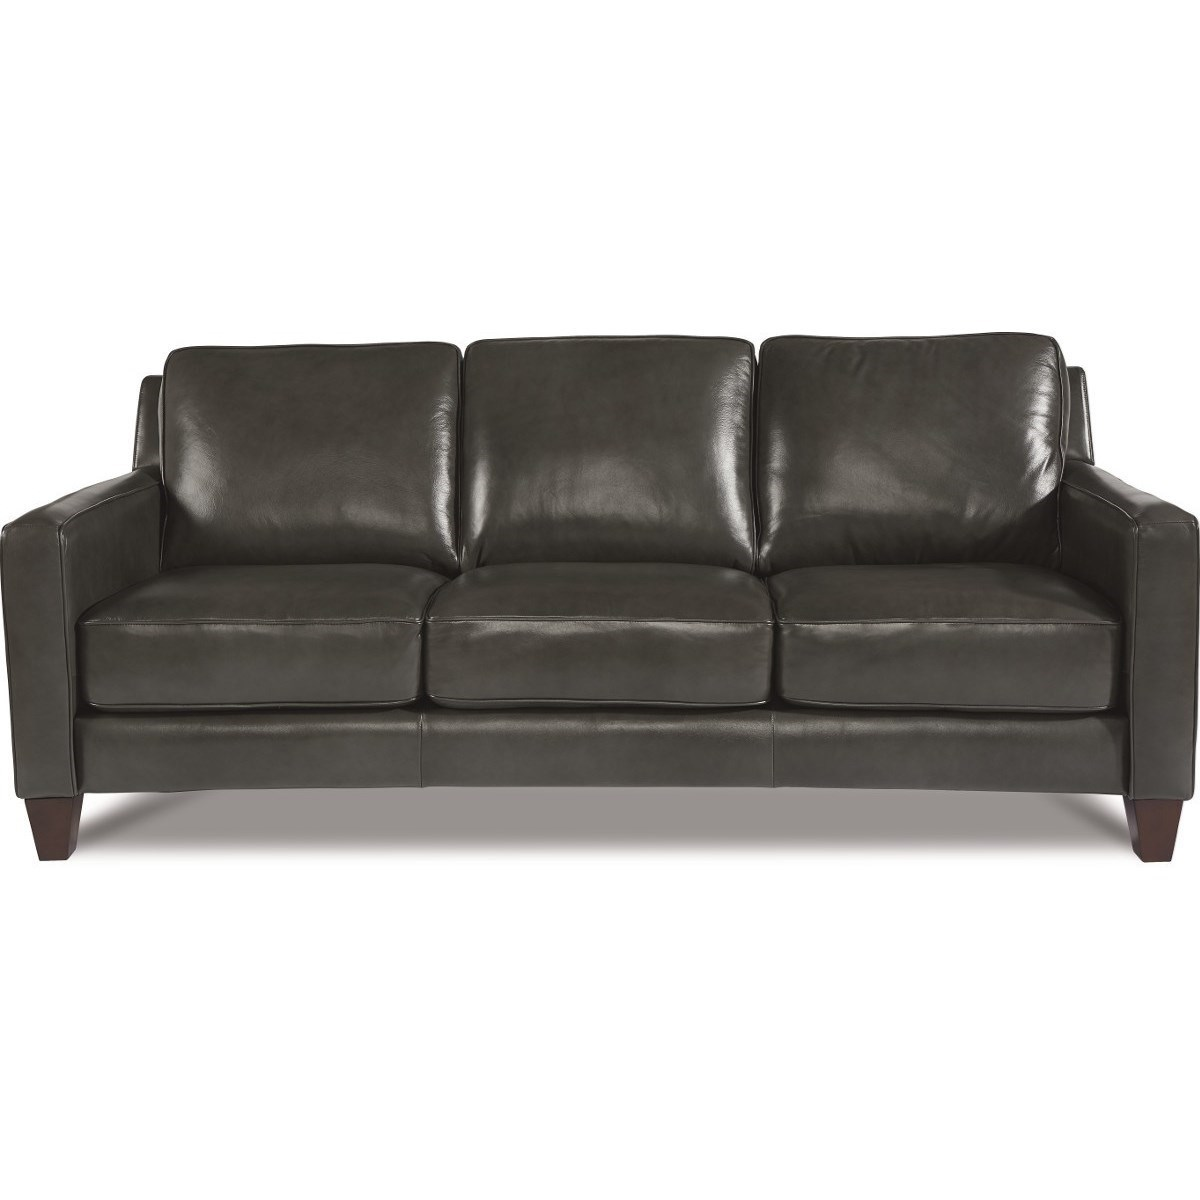 Leather Sofa La Z Boy La Z Boy Archer Contemporary Leather Sofa Morris Home Sofas